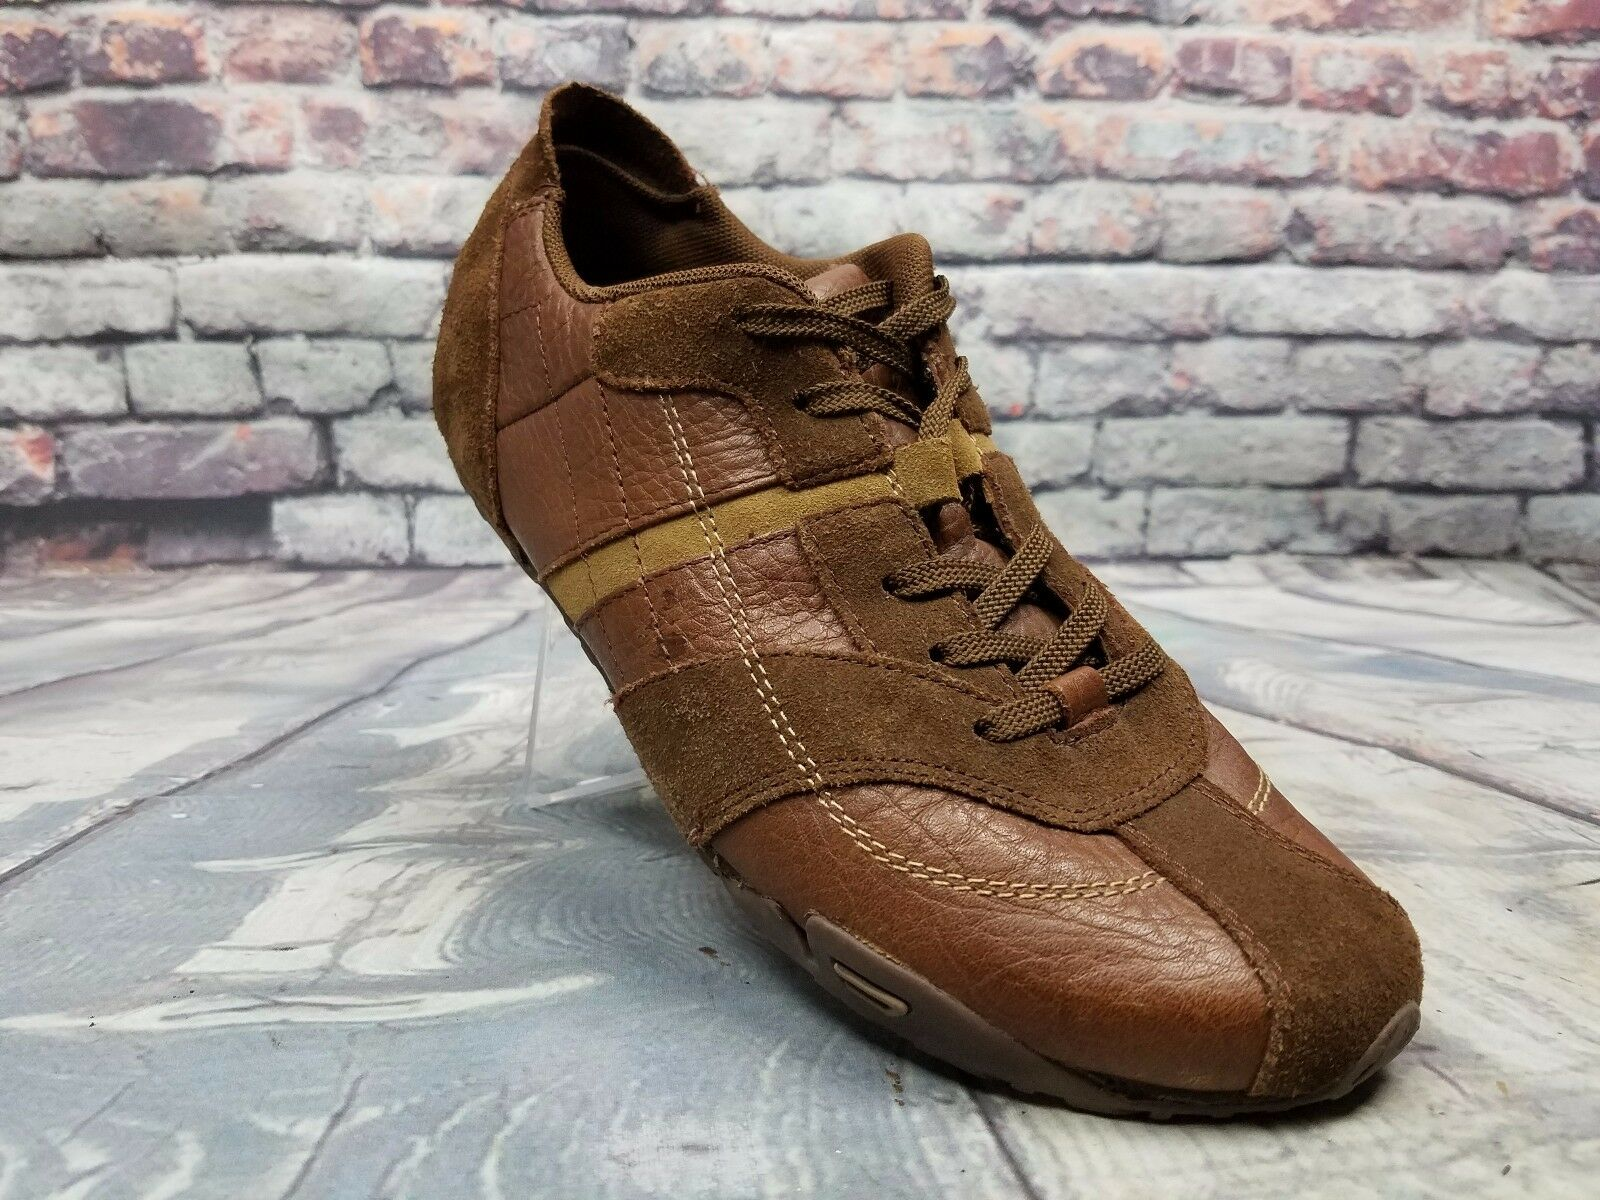 Womens DIESEL BABS shoes brown UPPER leather Casual sneakers Lace up Sz 9